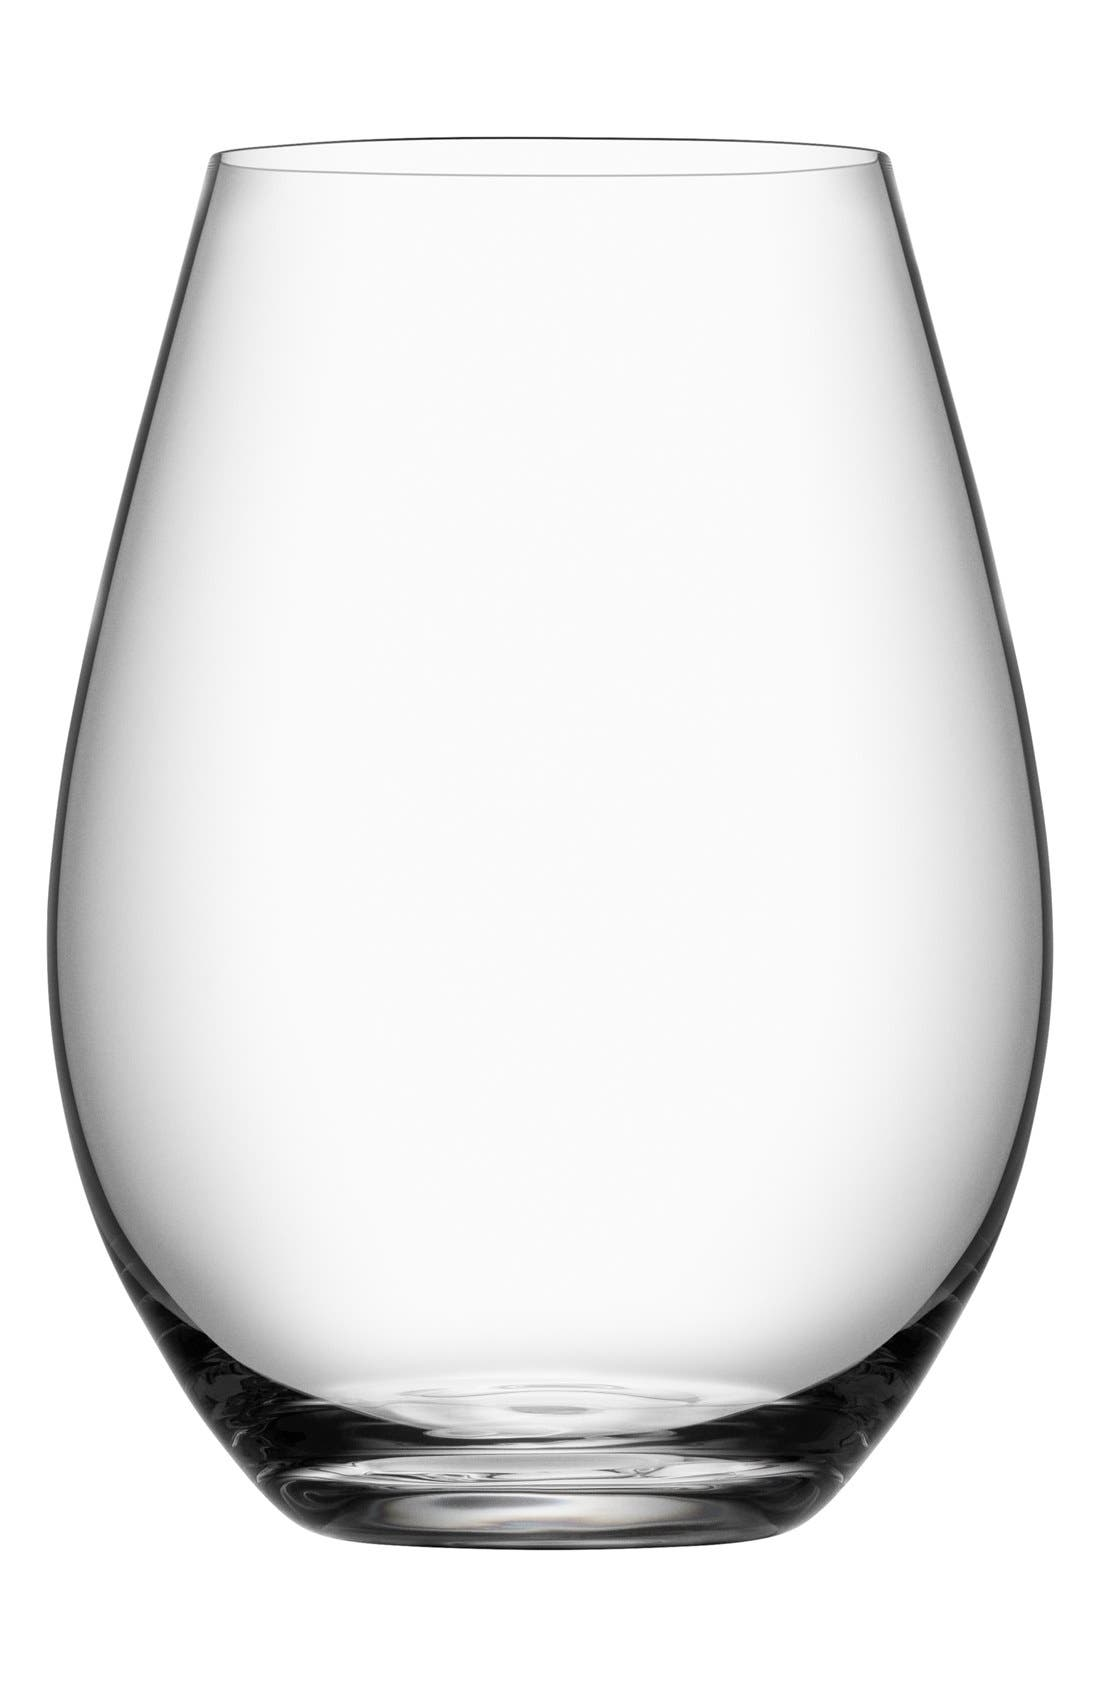 'More' Stemless Wine Glasses,                             Main thumbnail 1, color,